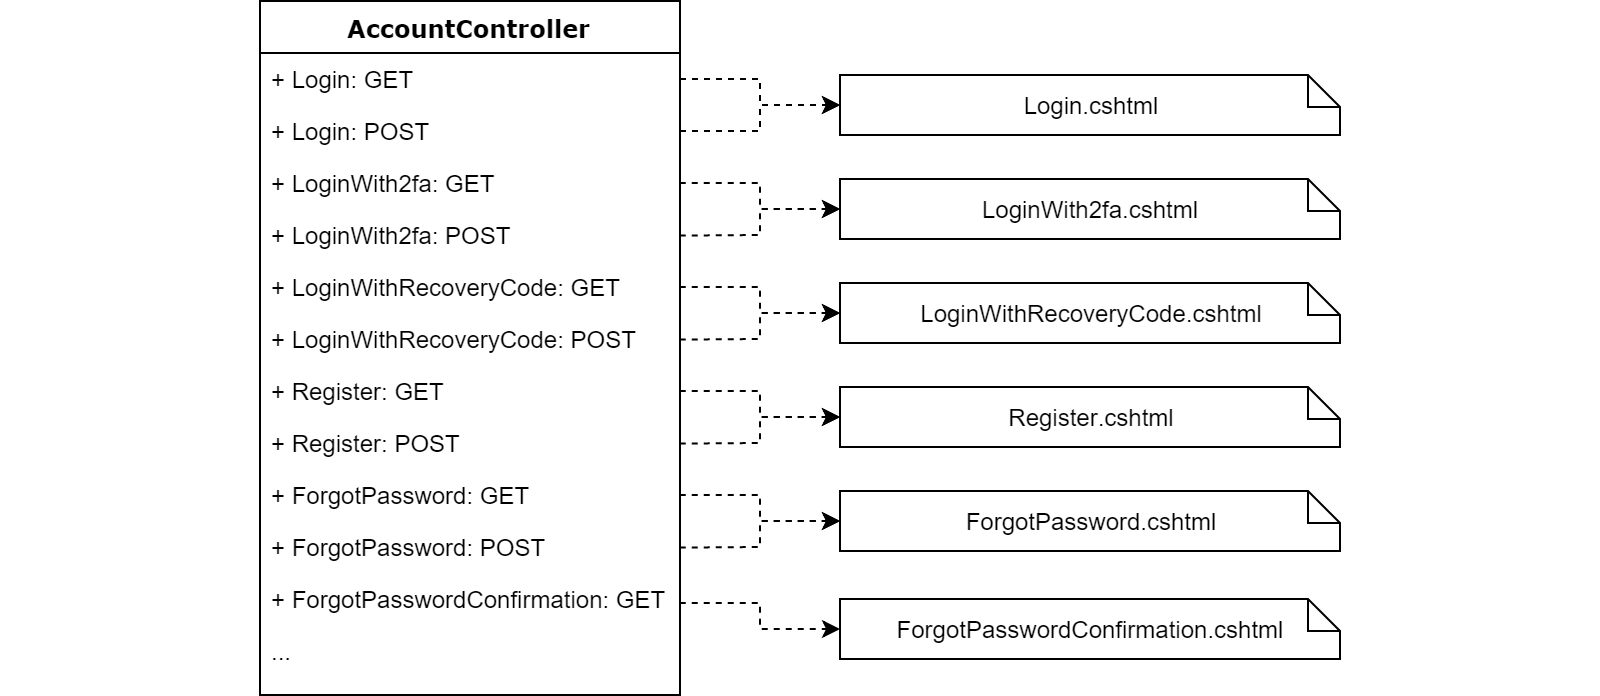 Diagram showing how Identity AccountController in MVC consists of many pairs of actions